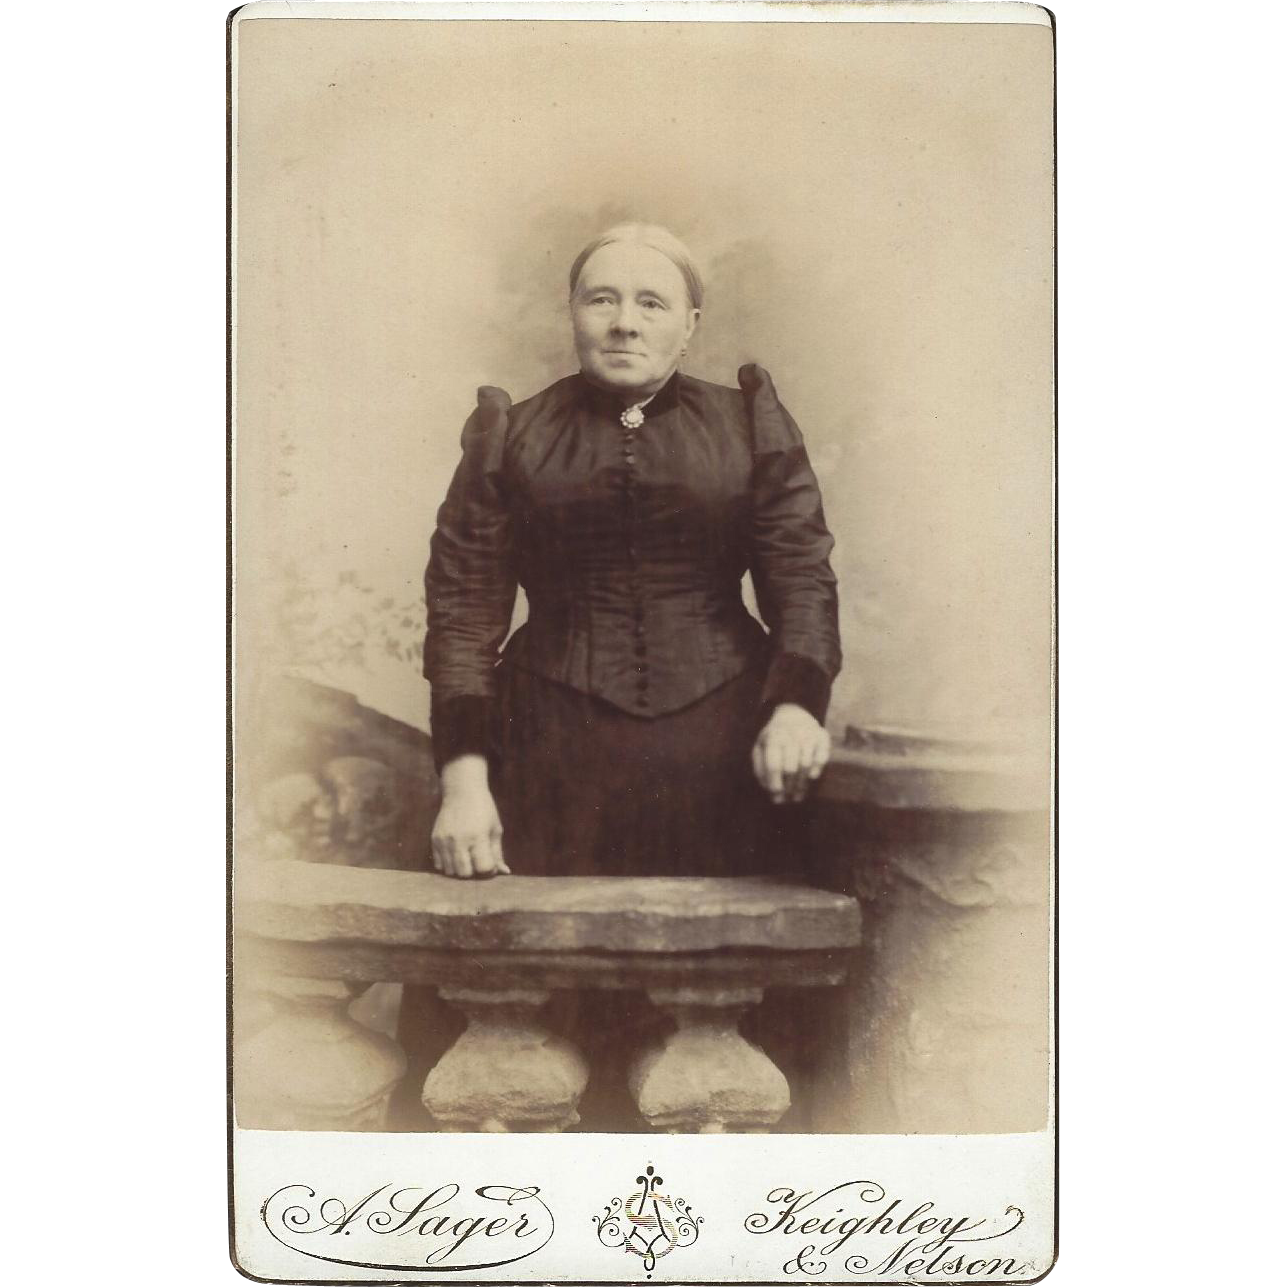 Photograph Card of Older Woman Victorian Dress Sager